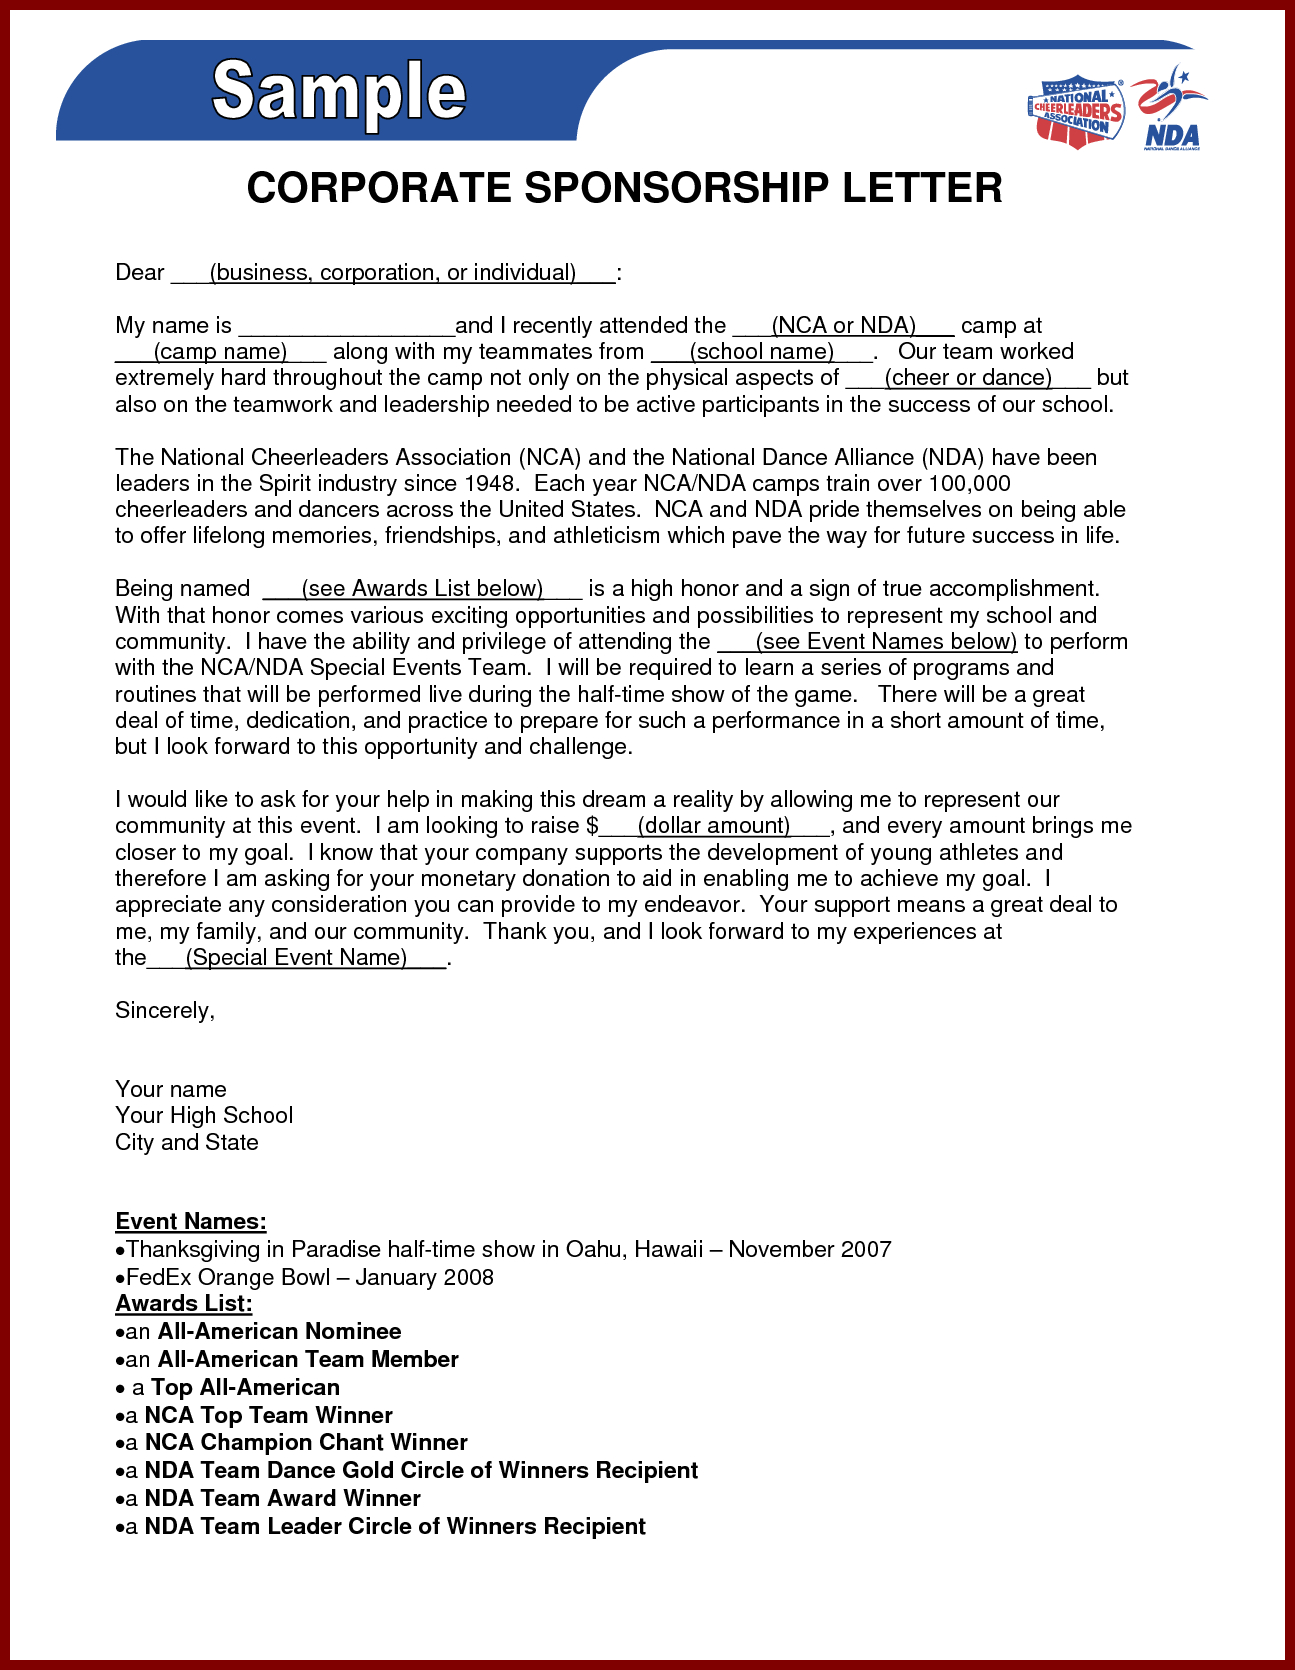 Sponsorship Proposal Letter Template - Business Sponsorship Letter Template Gallery Business Cards Ideas